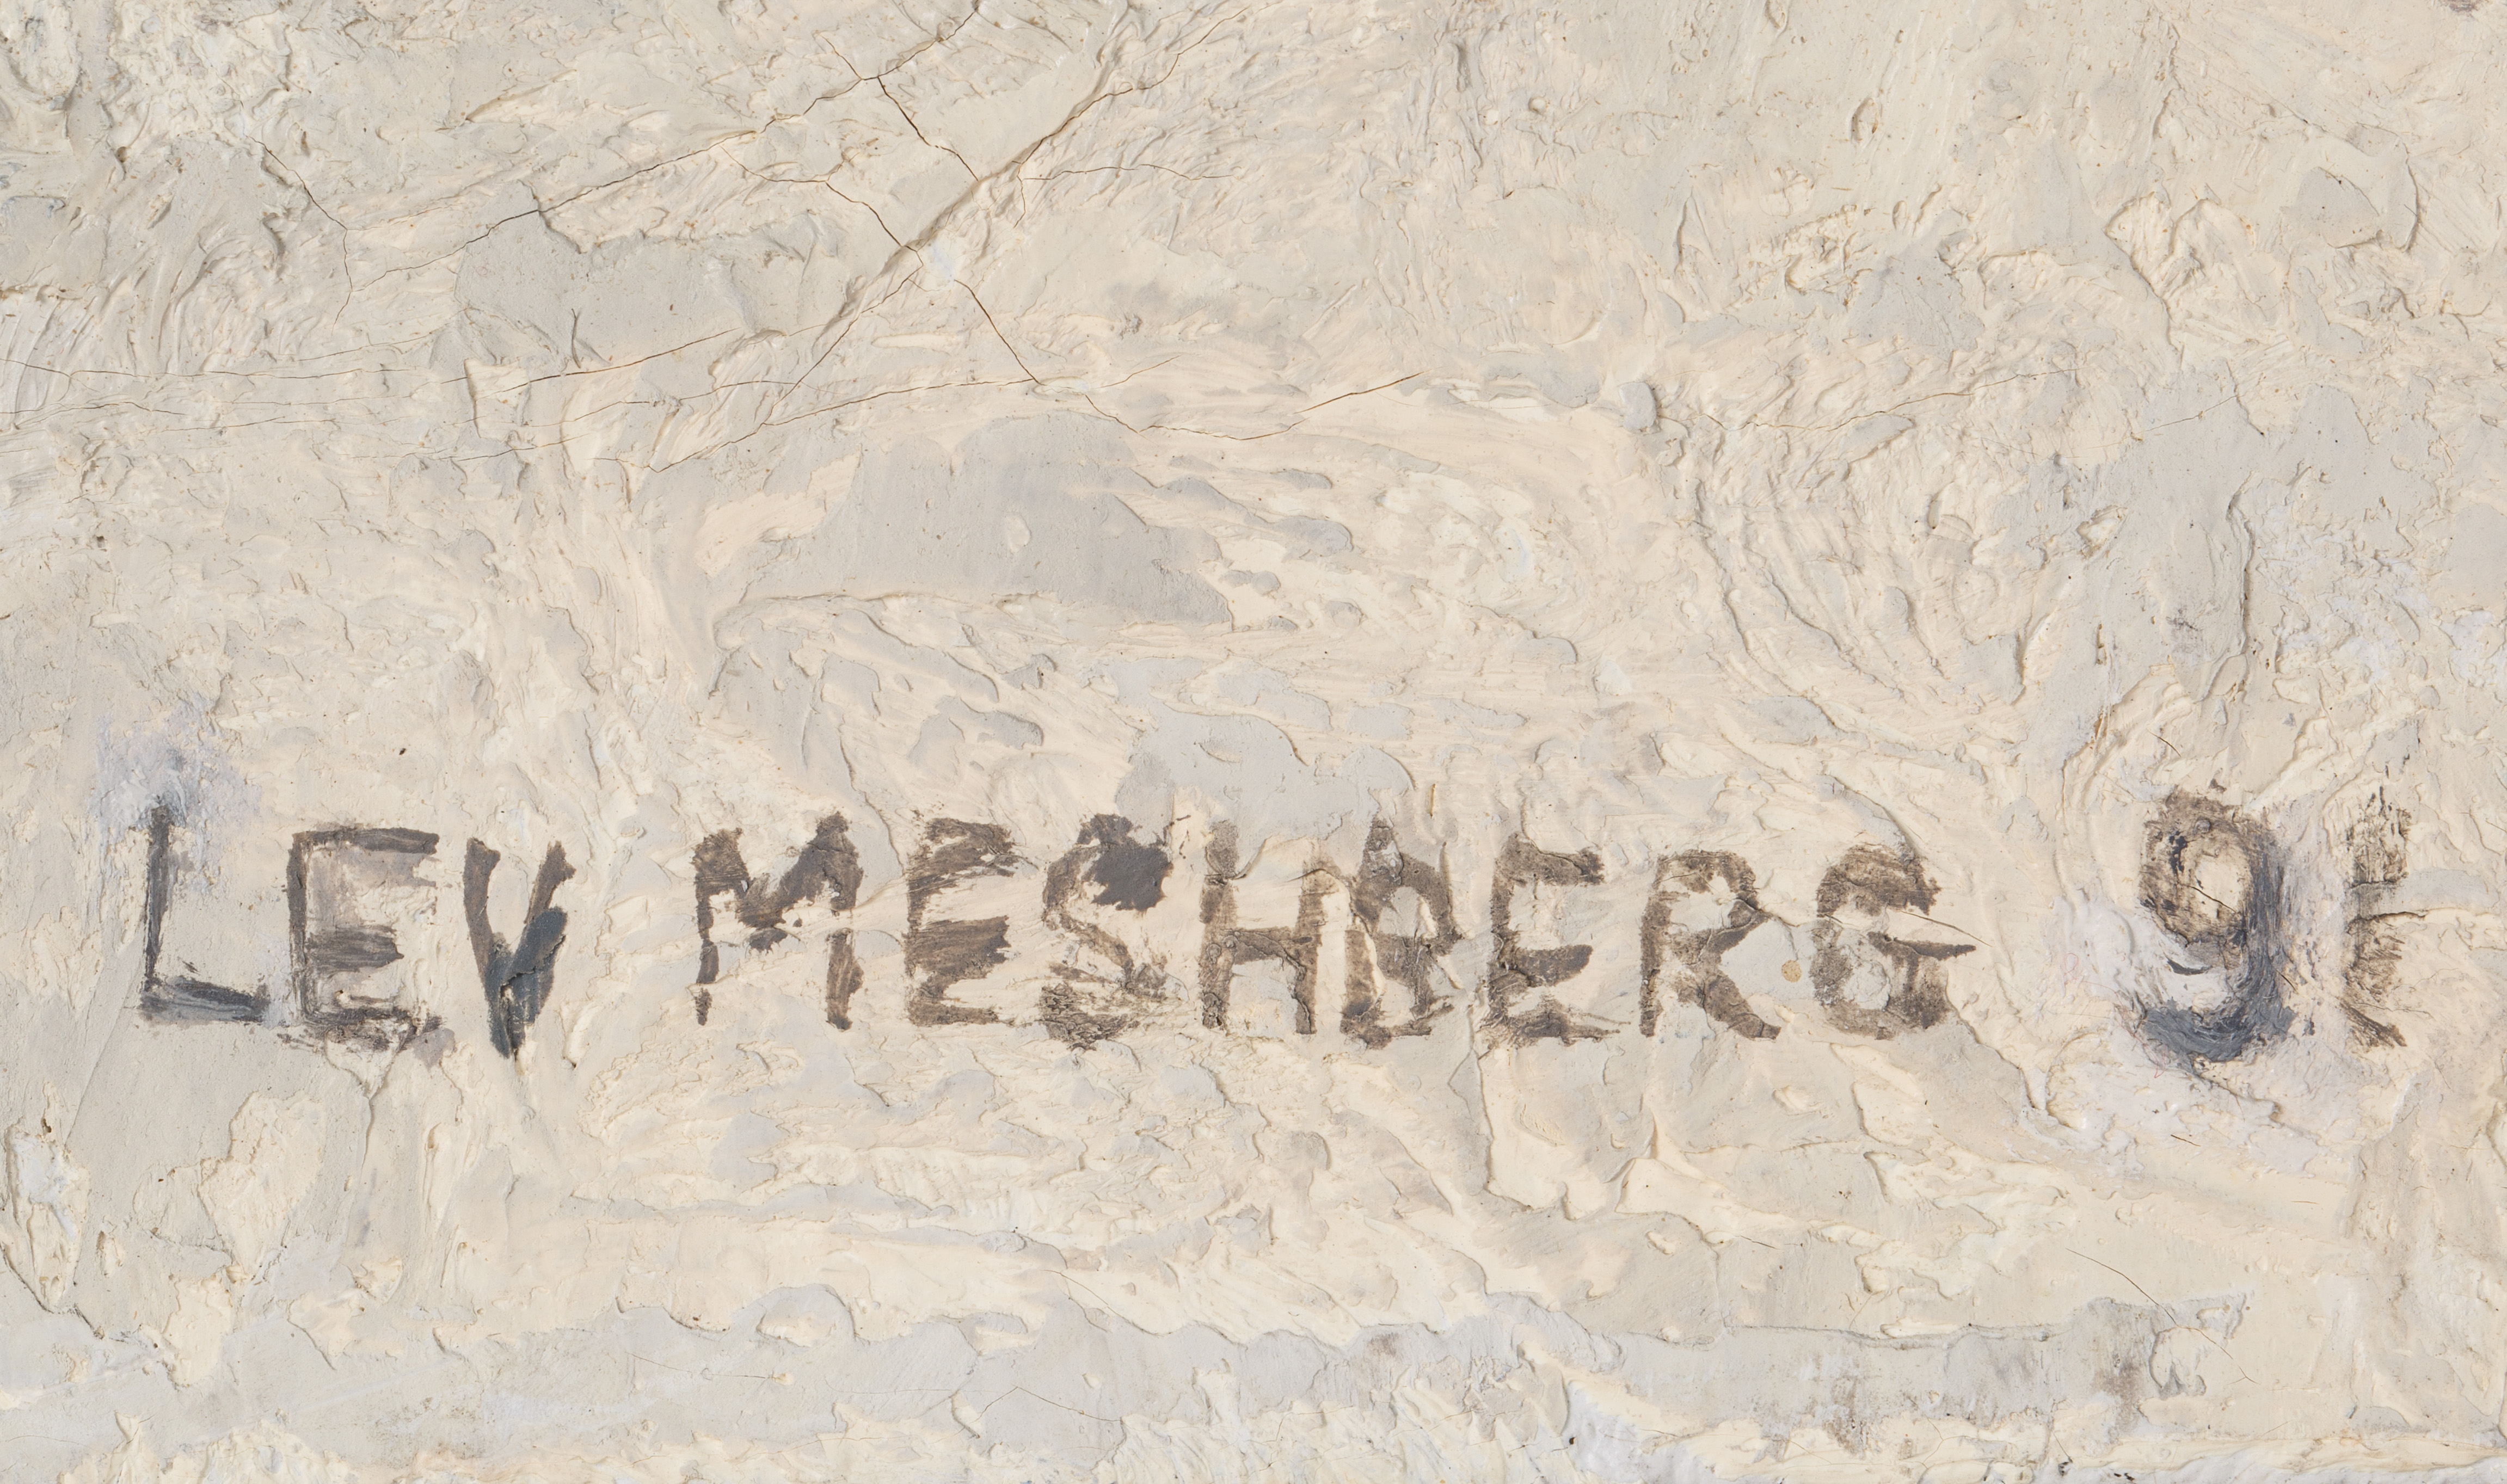 LEV MESHBERG (RUSSIAN 1933-2007) - Image 2 of 5